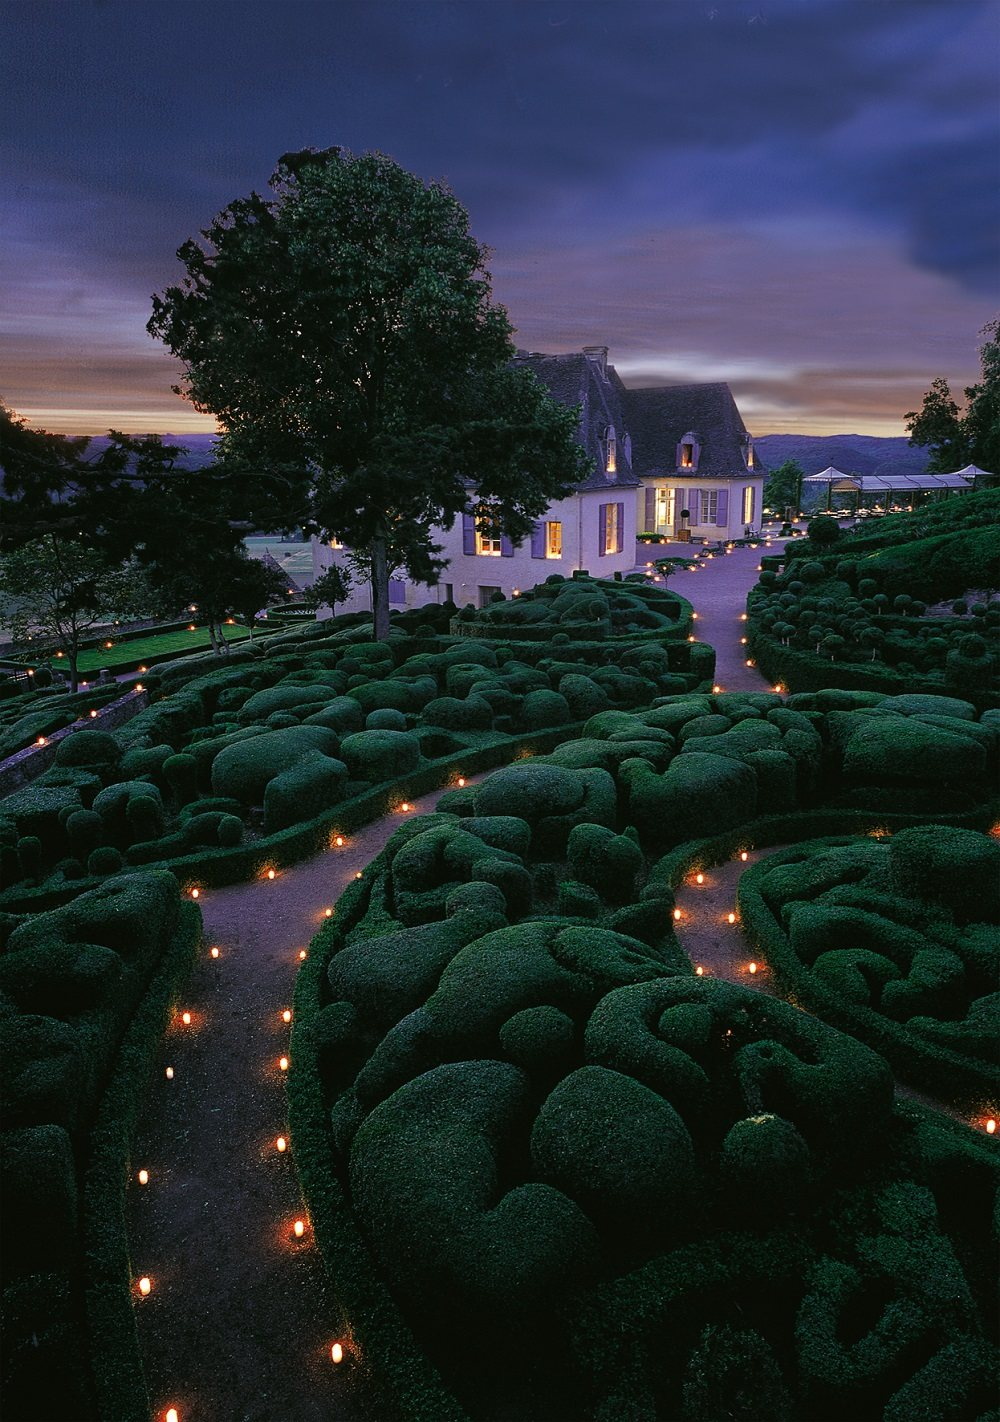 Garden lit by candles